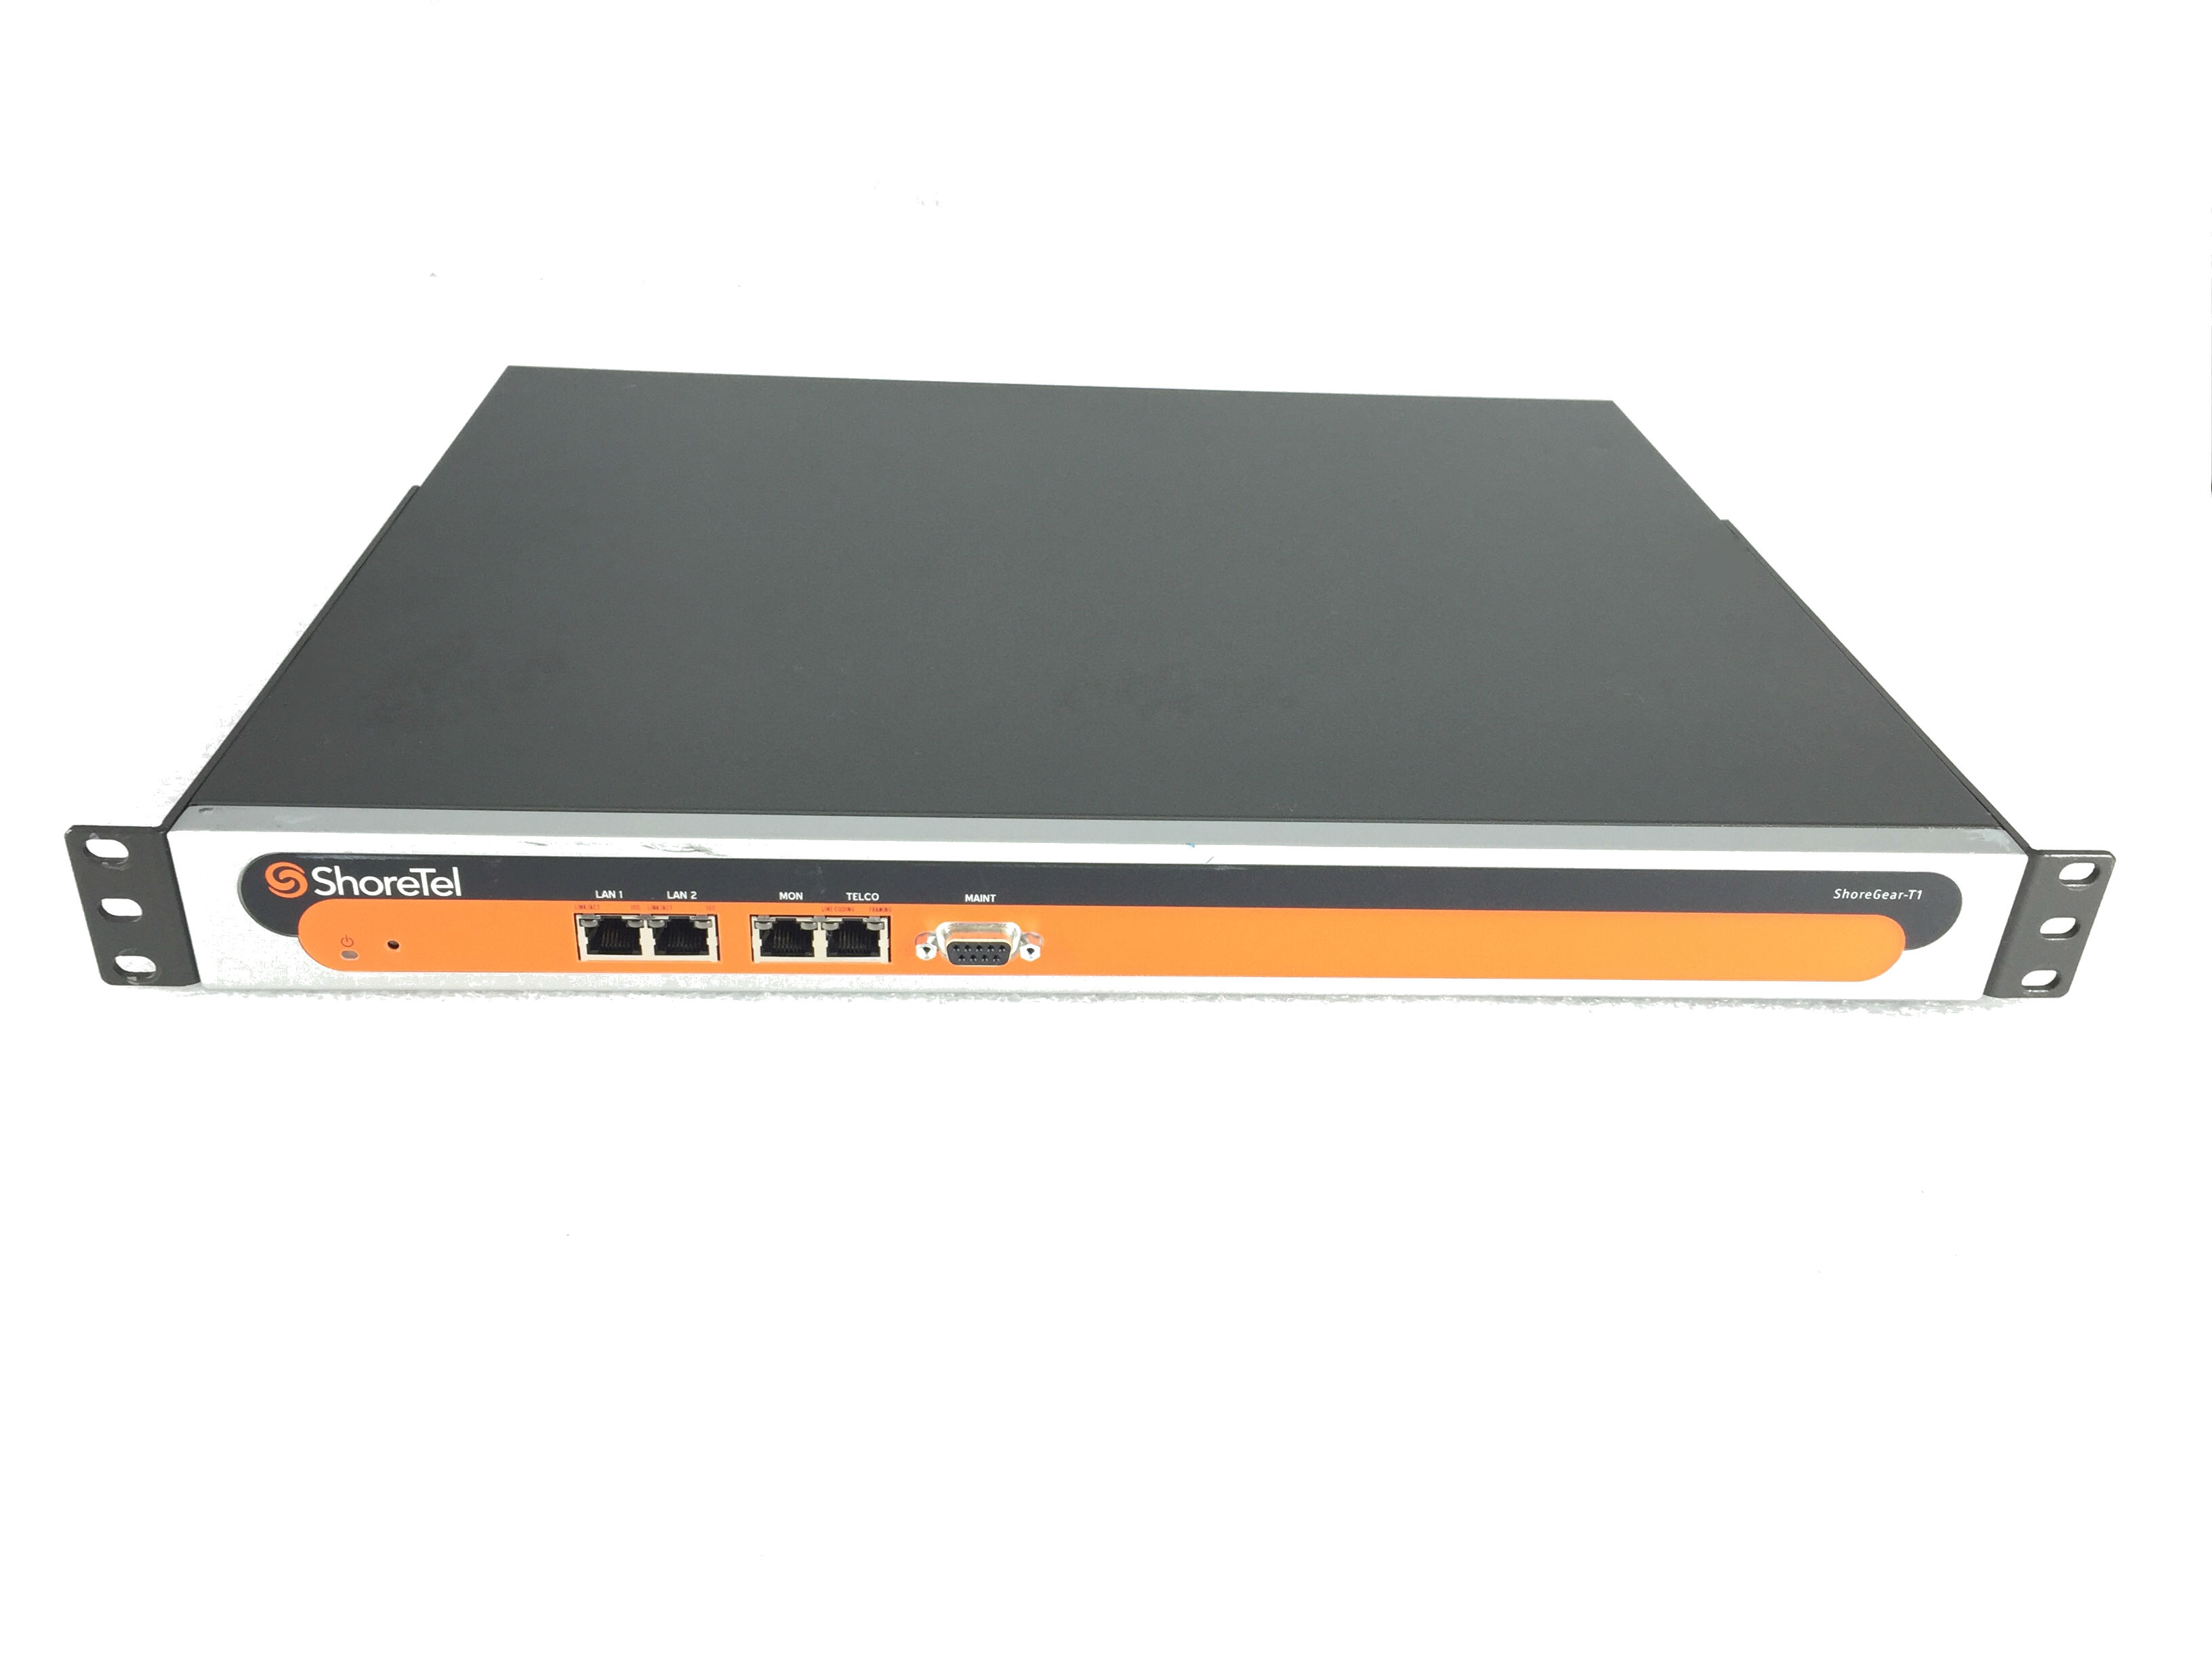 Shoretel Shoregear-T1/Sg-T1 Voip Switch (600-1027-23)